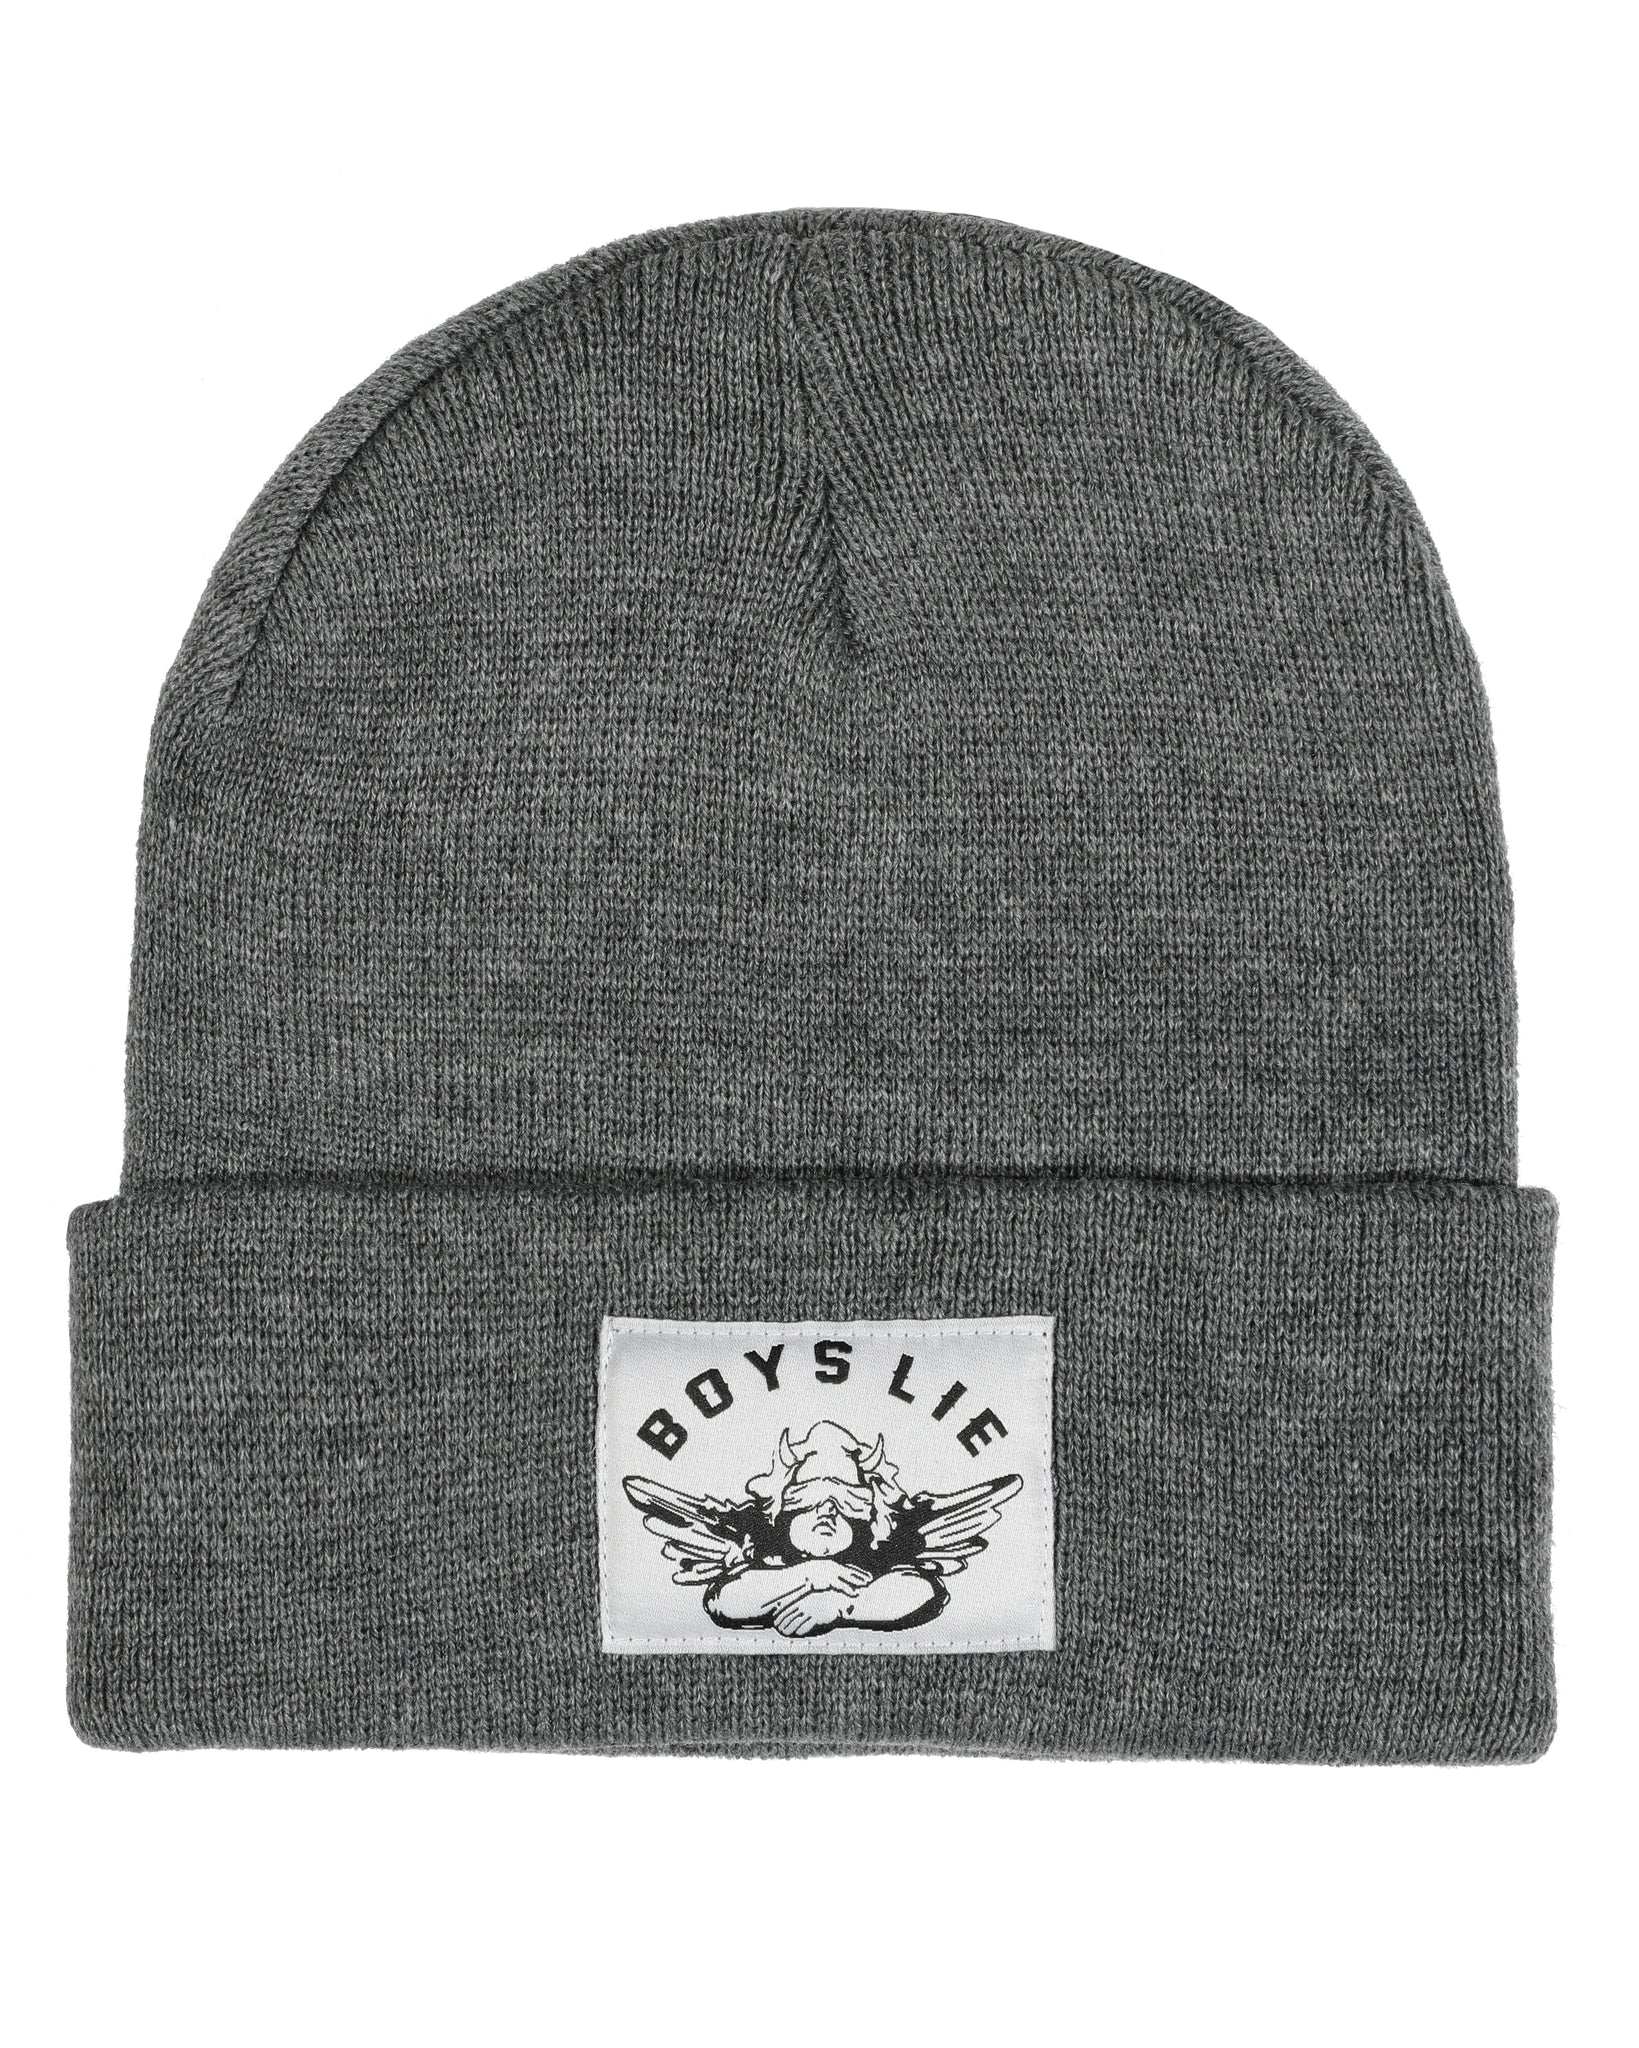 BOYS LIE DARK HEATHER GREY BEANIE